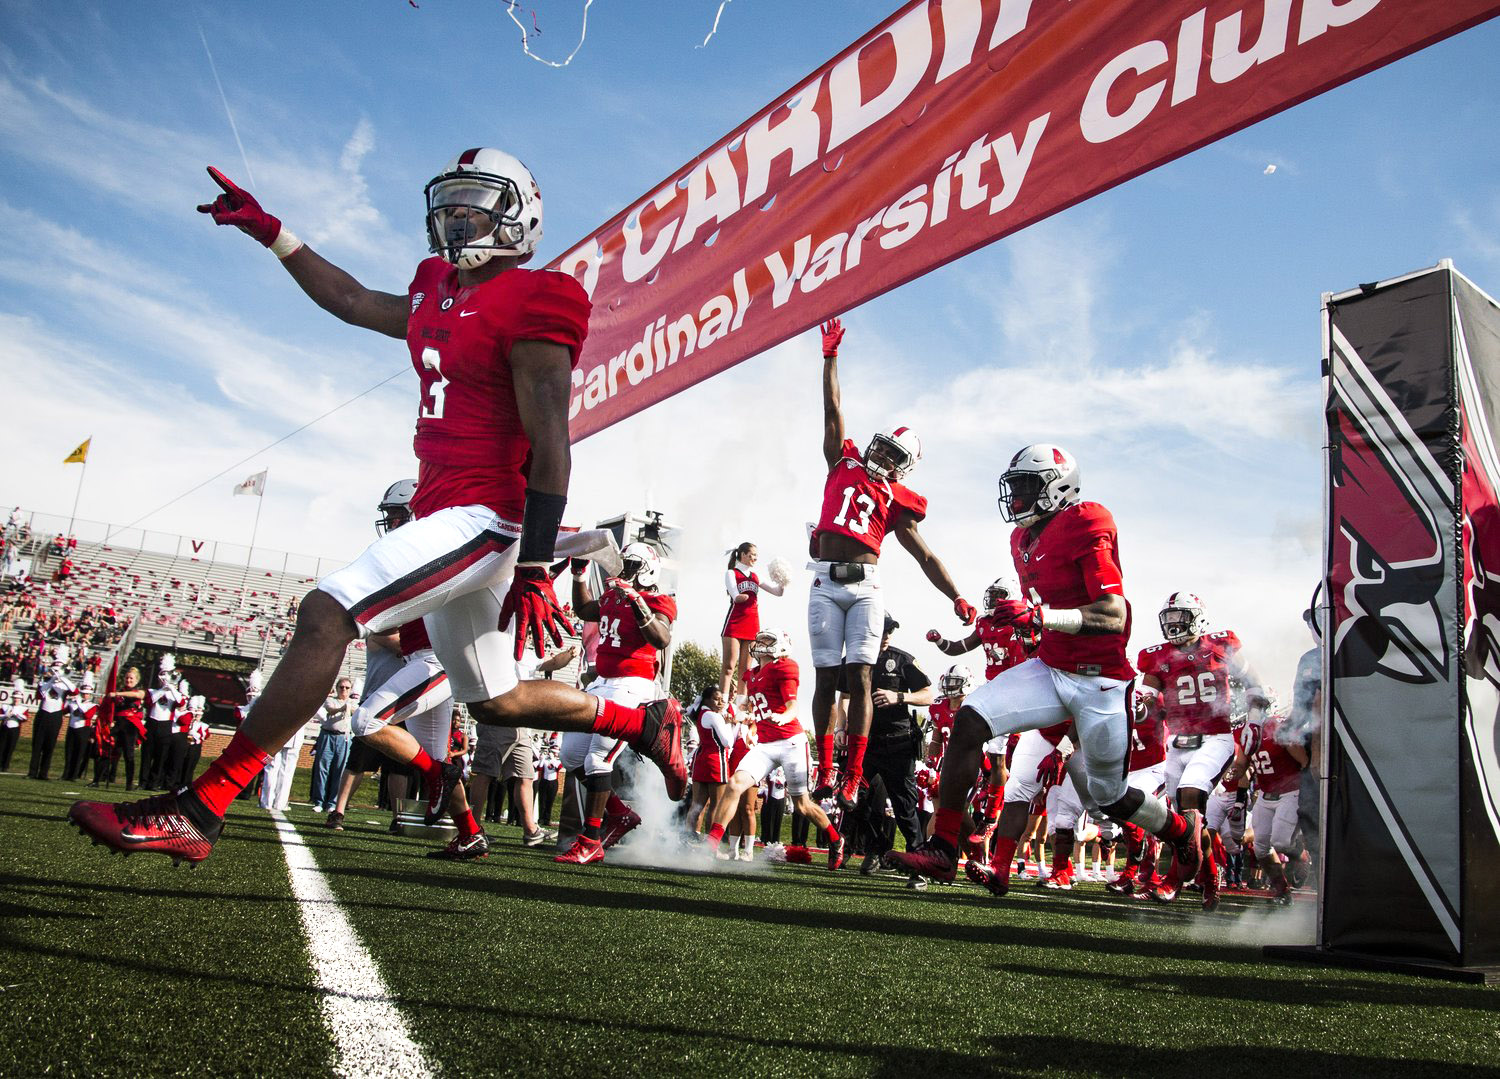 Ball State players rush on to the field through smoke and confetti for the homecoming game against Central Michigan, Oct. 21 at Scheumann Stadium. Ball State lost to Central Michigan, 9-56.  Photos for Ball State Daily News